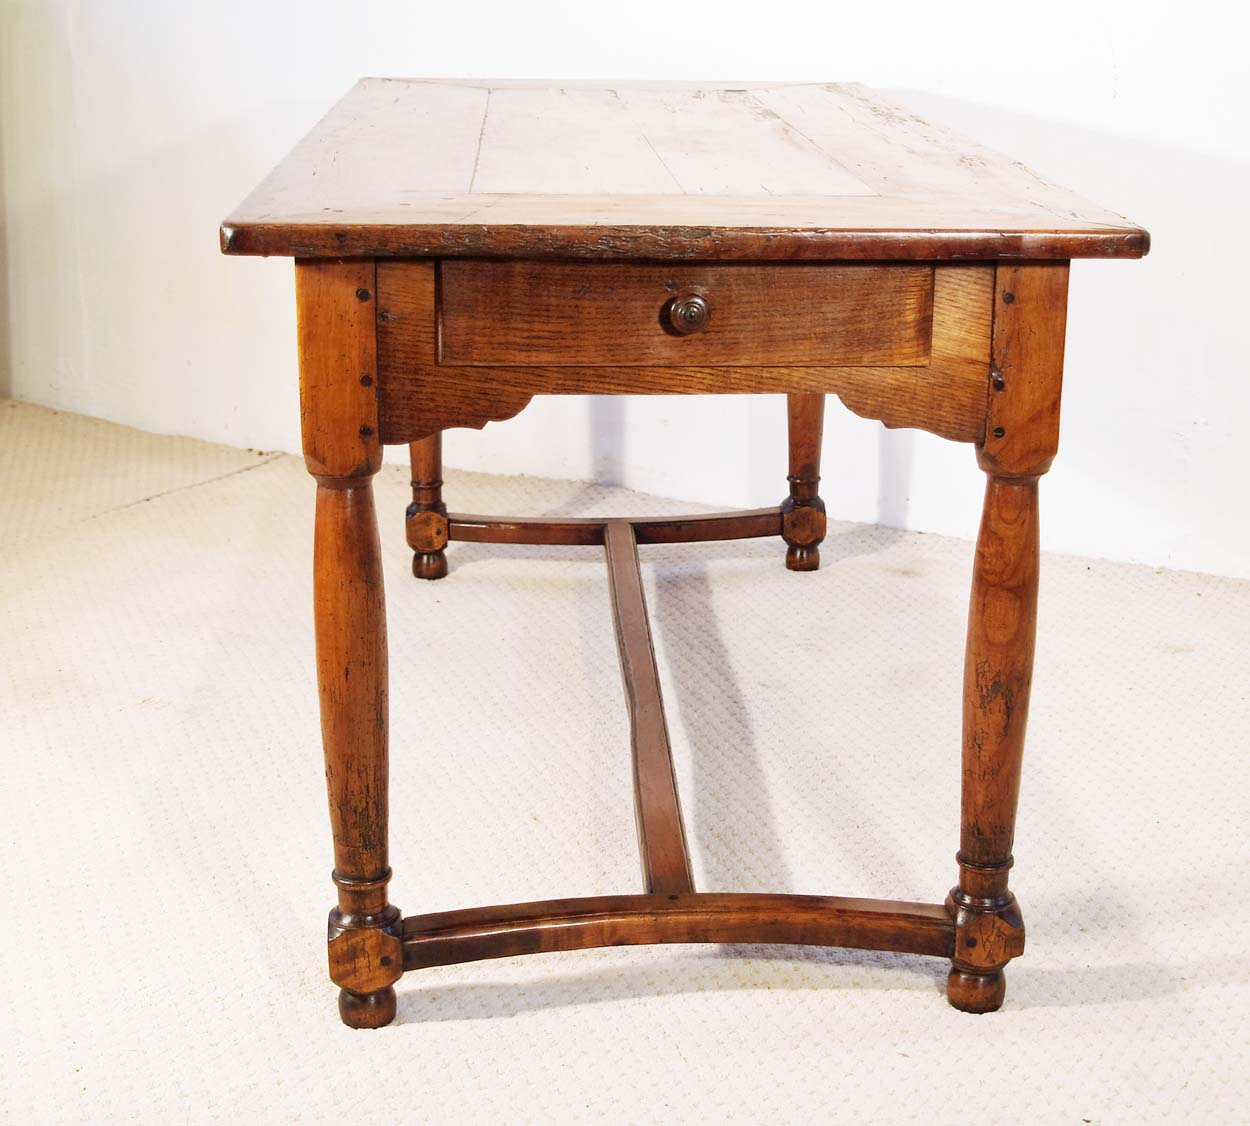 French Antique Cherry Farmhouse Table with Crinoline Stretchers C 1790, end elevation